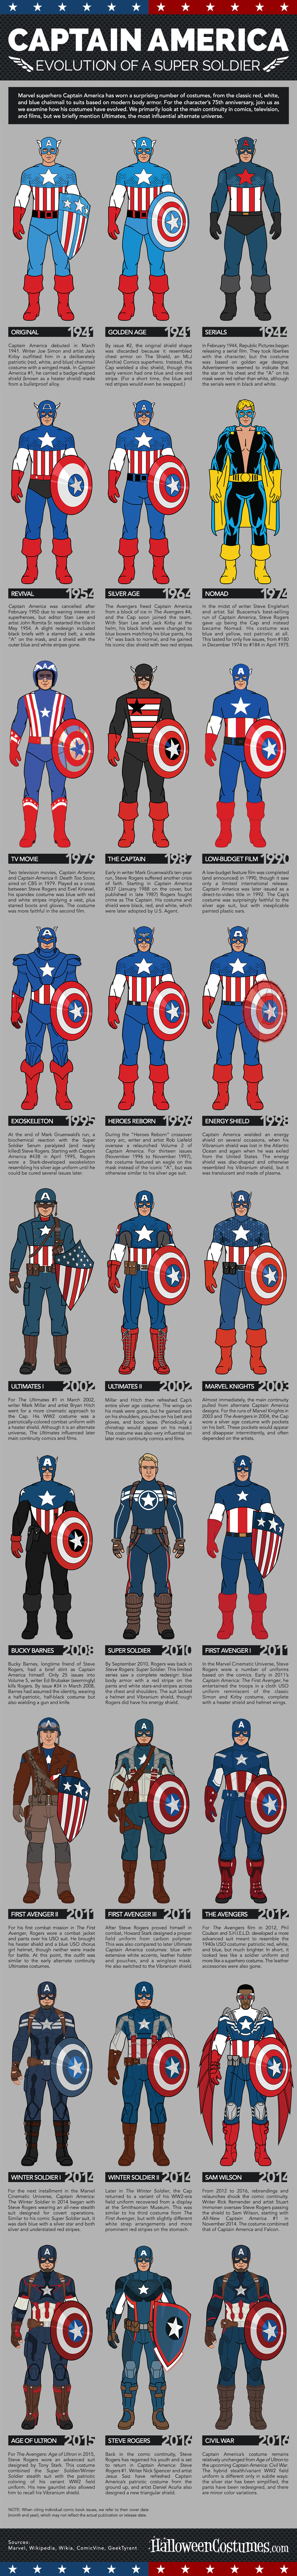 Captain-America-Costumes-Infographic